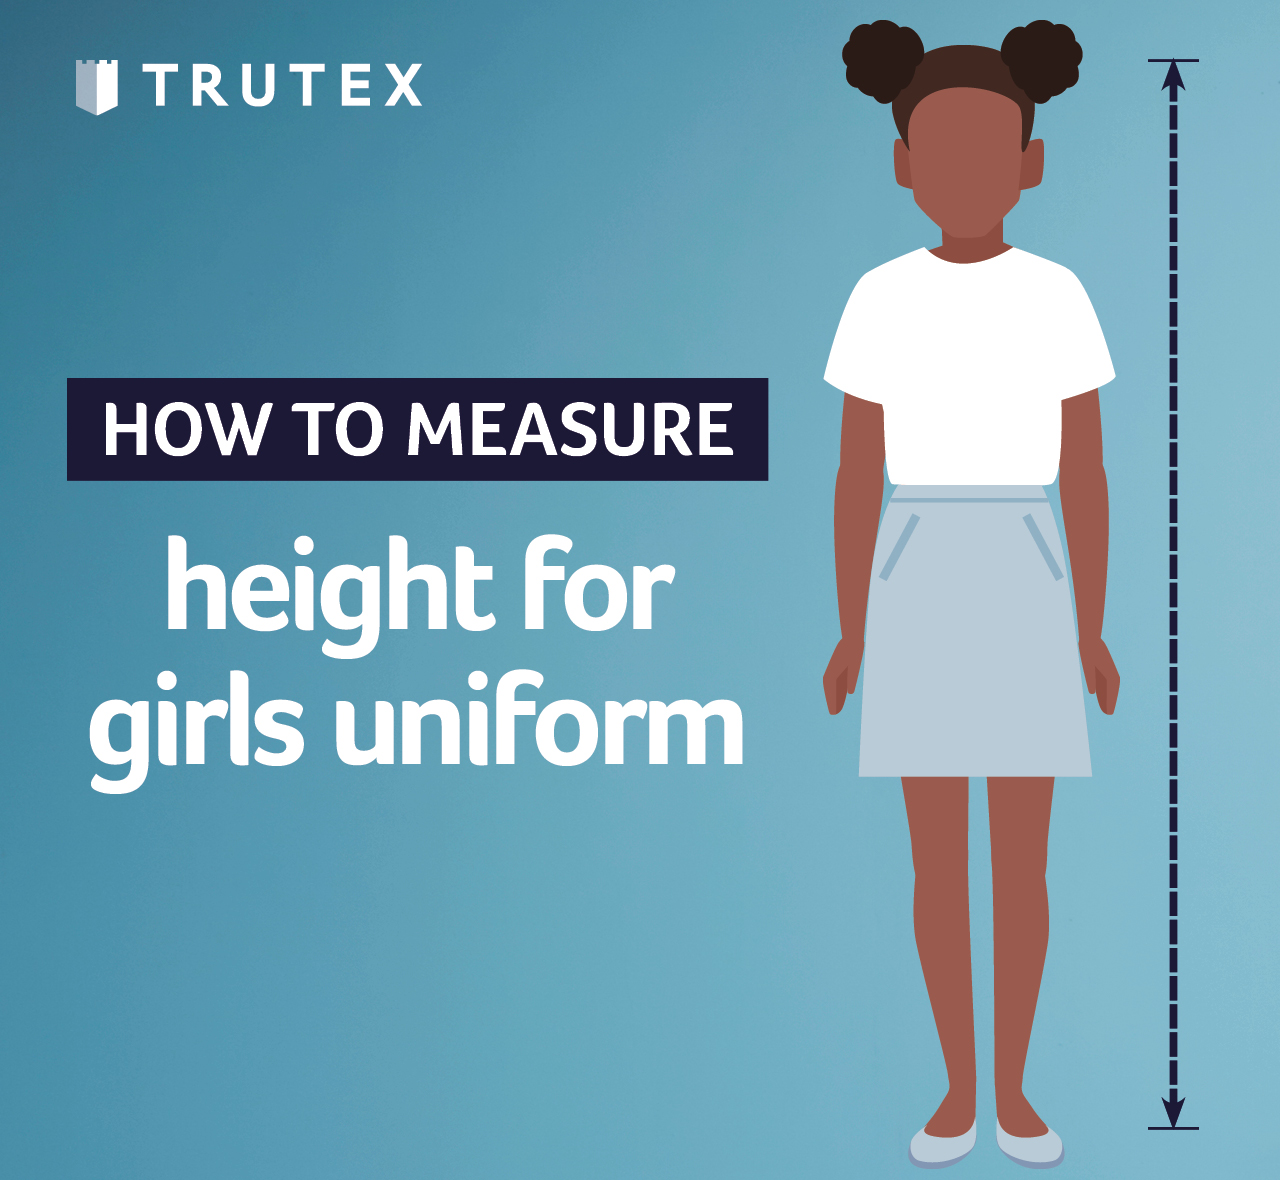 How to measure: height for girls uniform